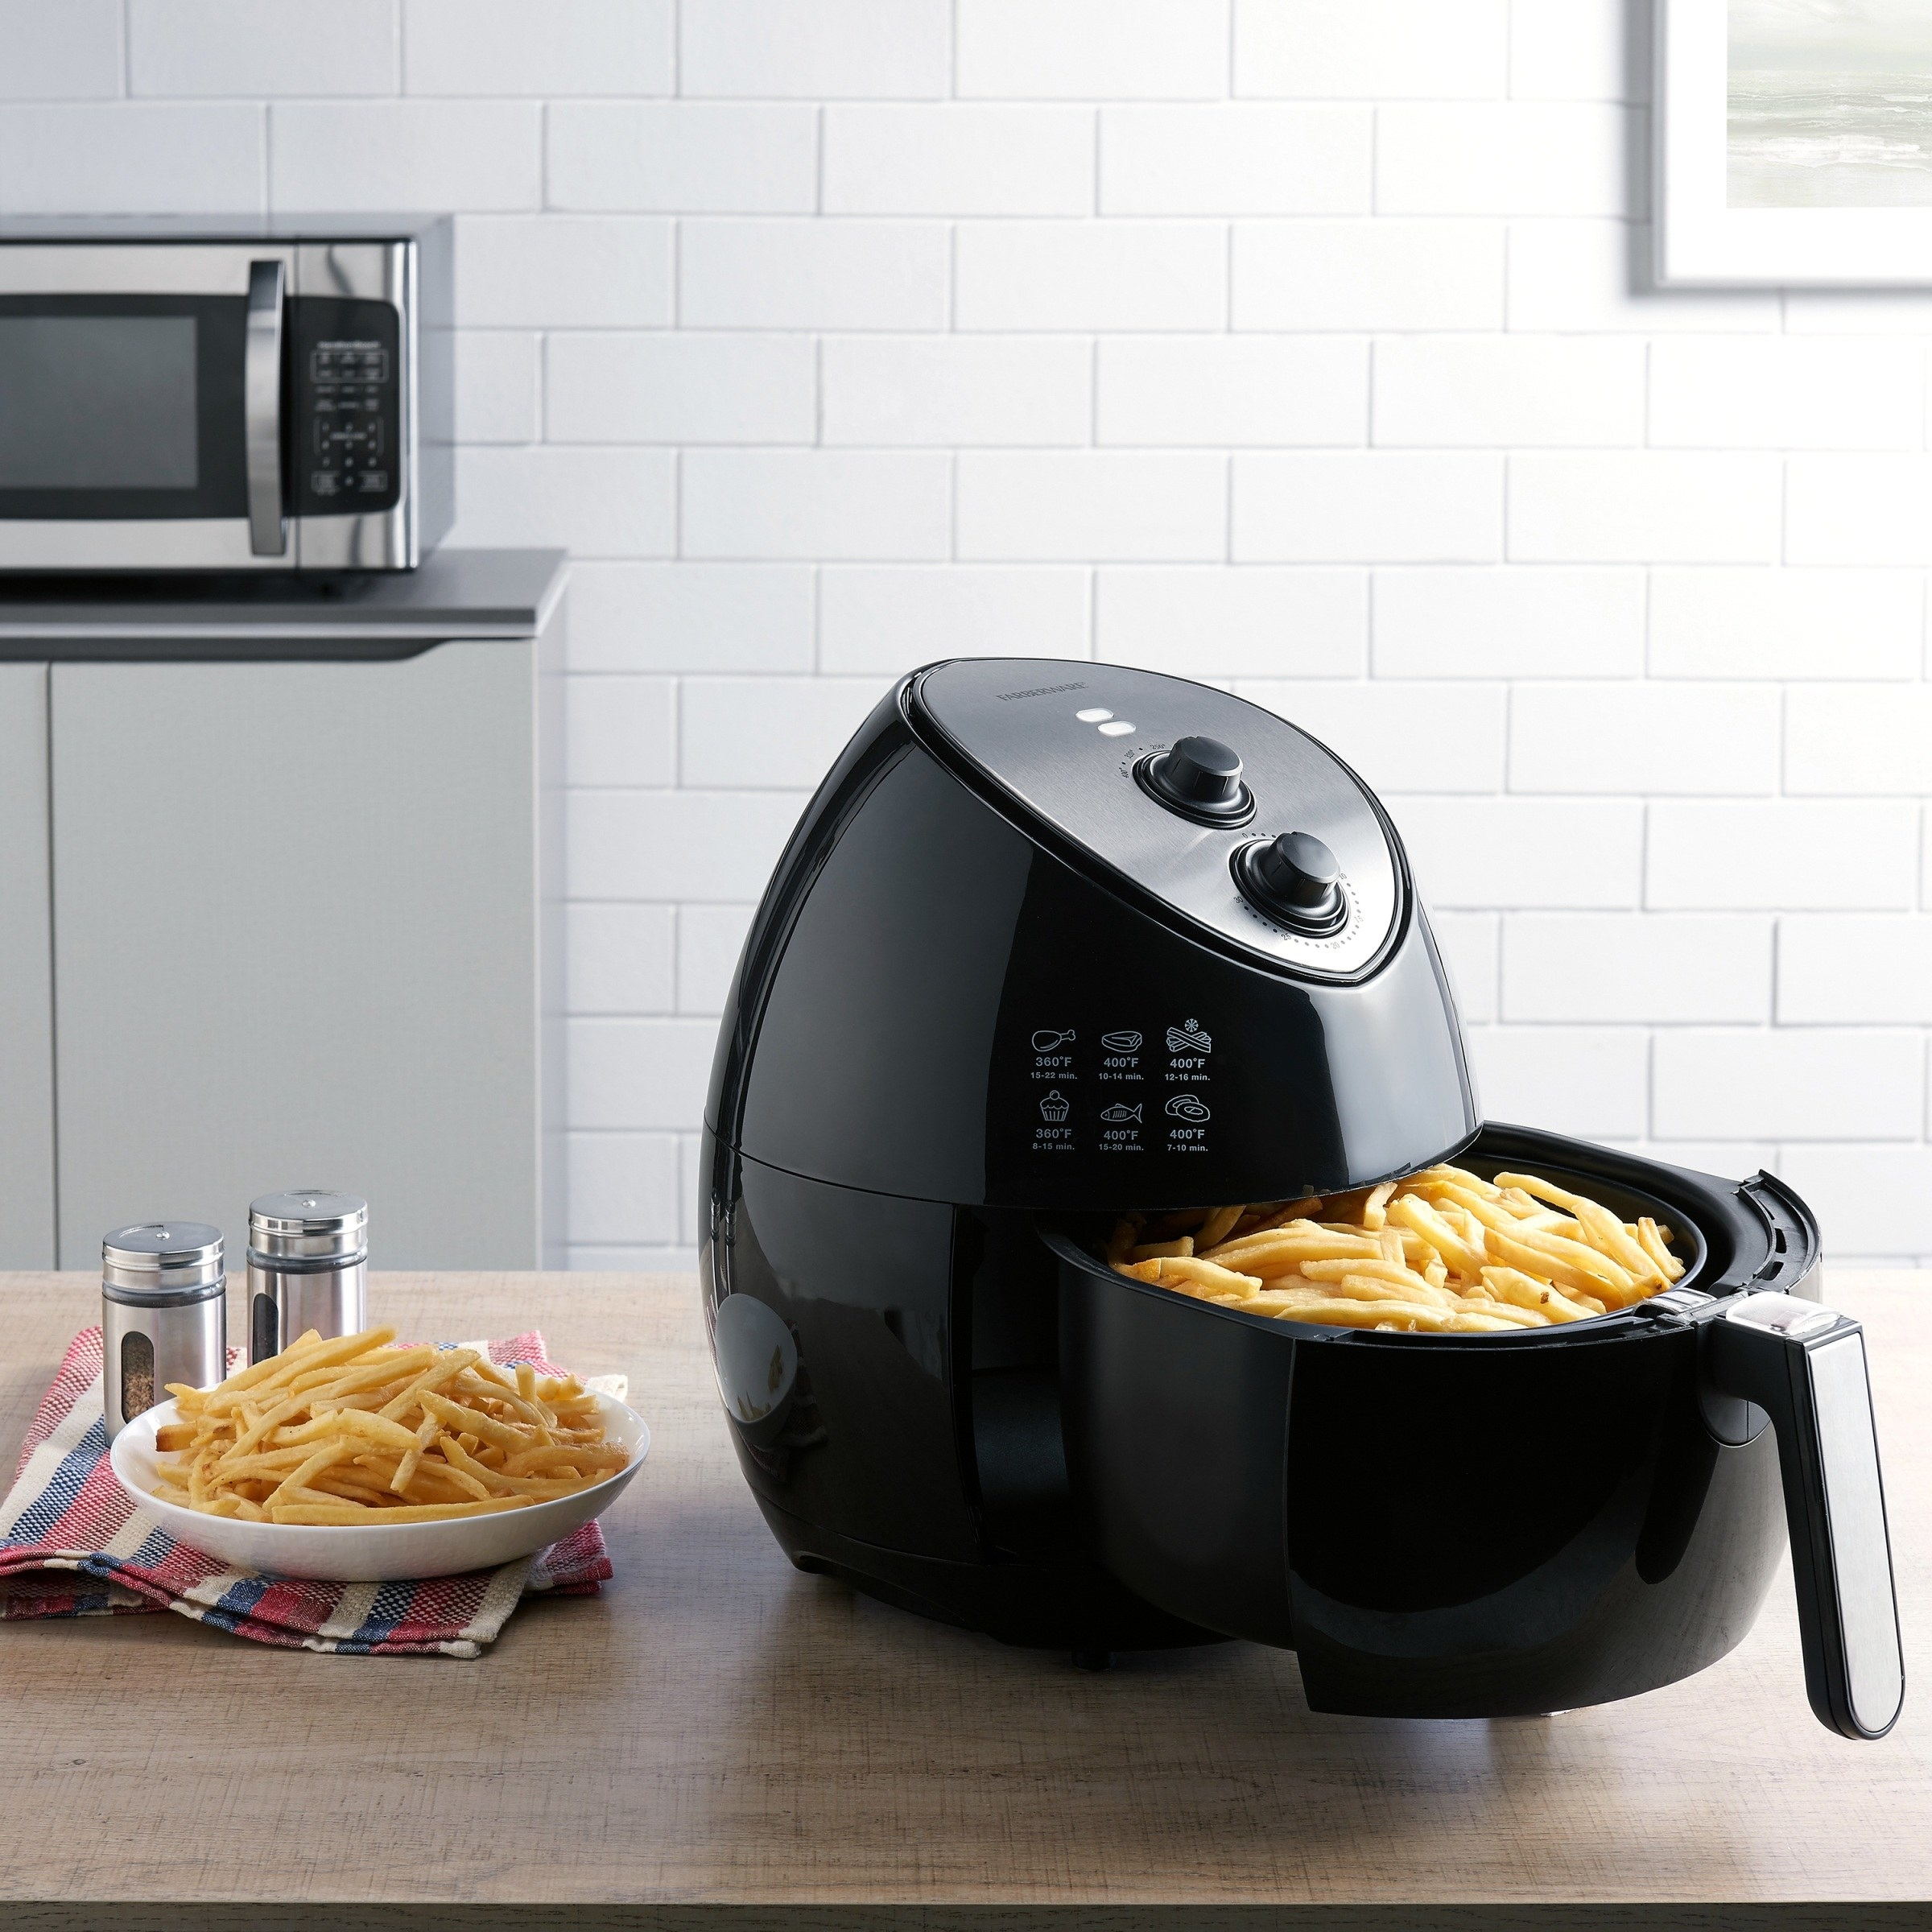 The small black air fryer, with its cooking basket open